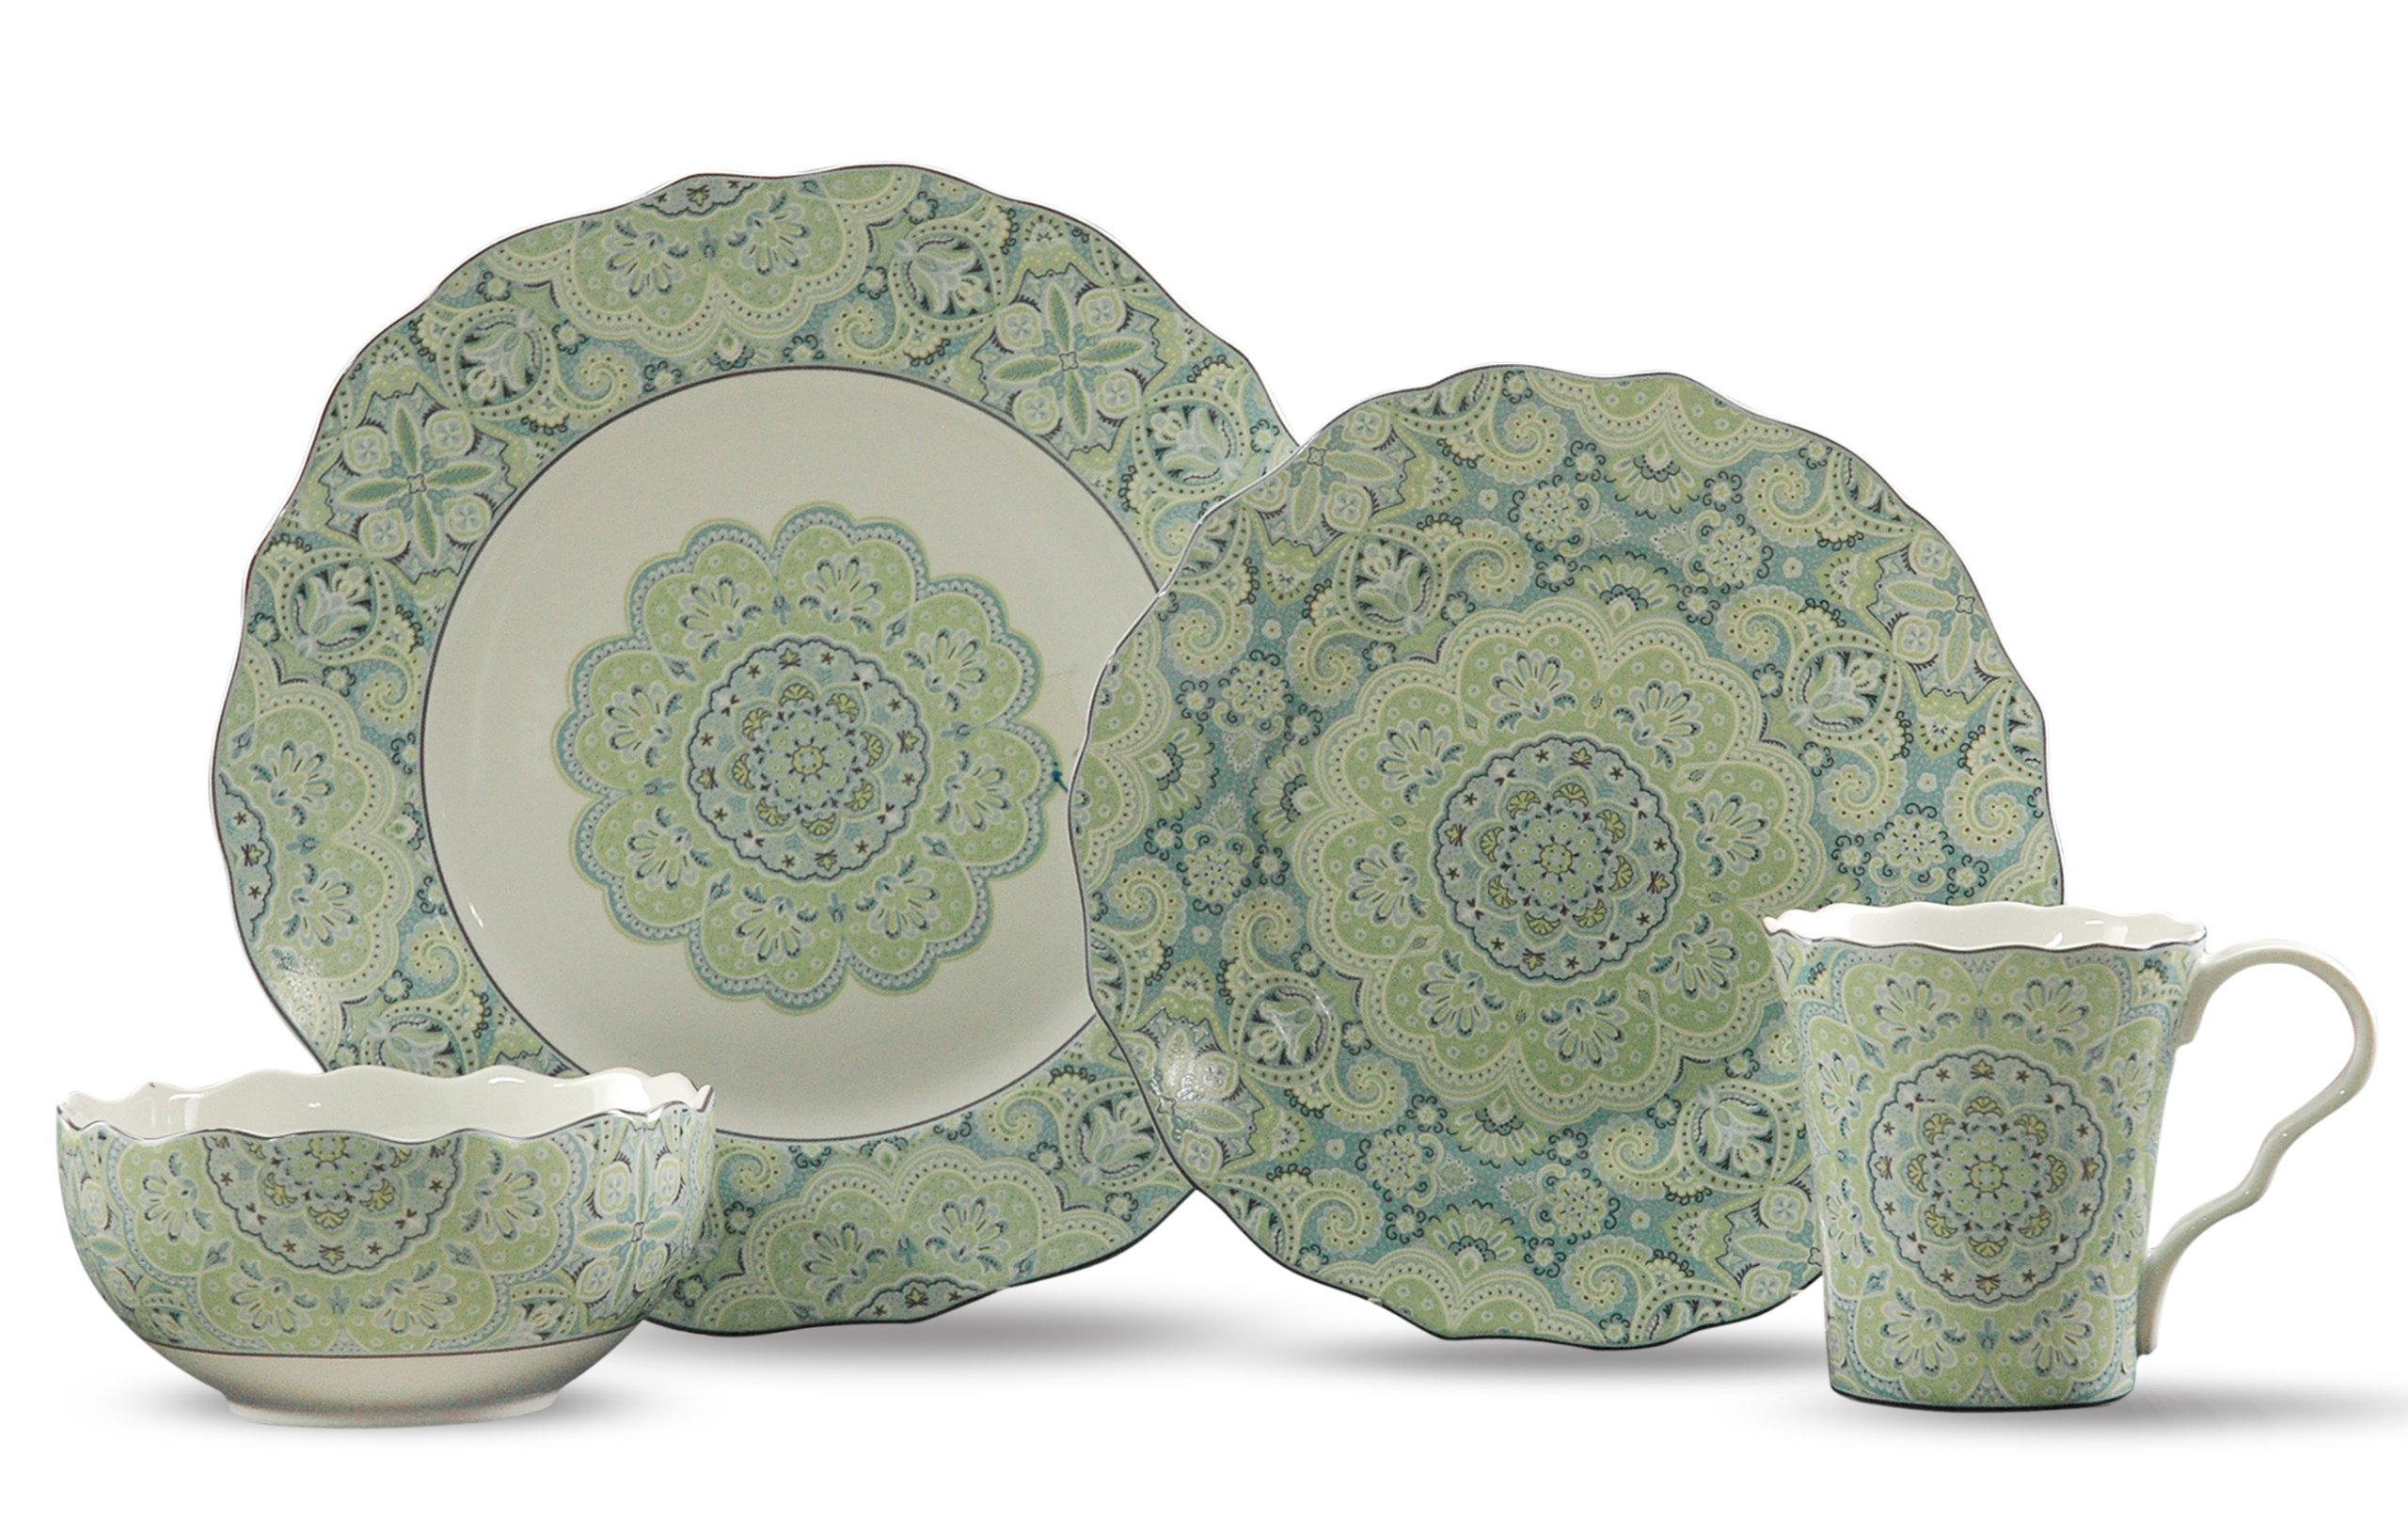 222 Fifth Lyria 16-Piece Dinnerware Sets, Teal by 222 Fifth (Image #1)